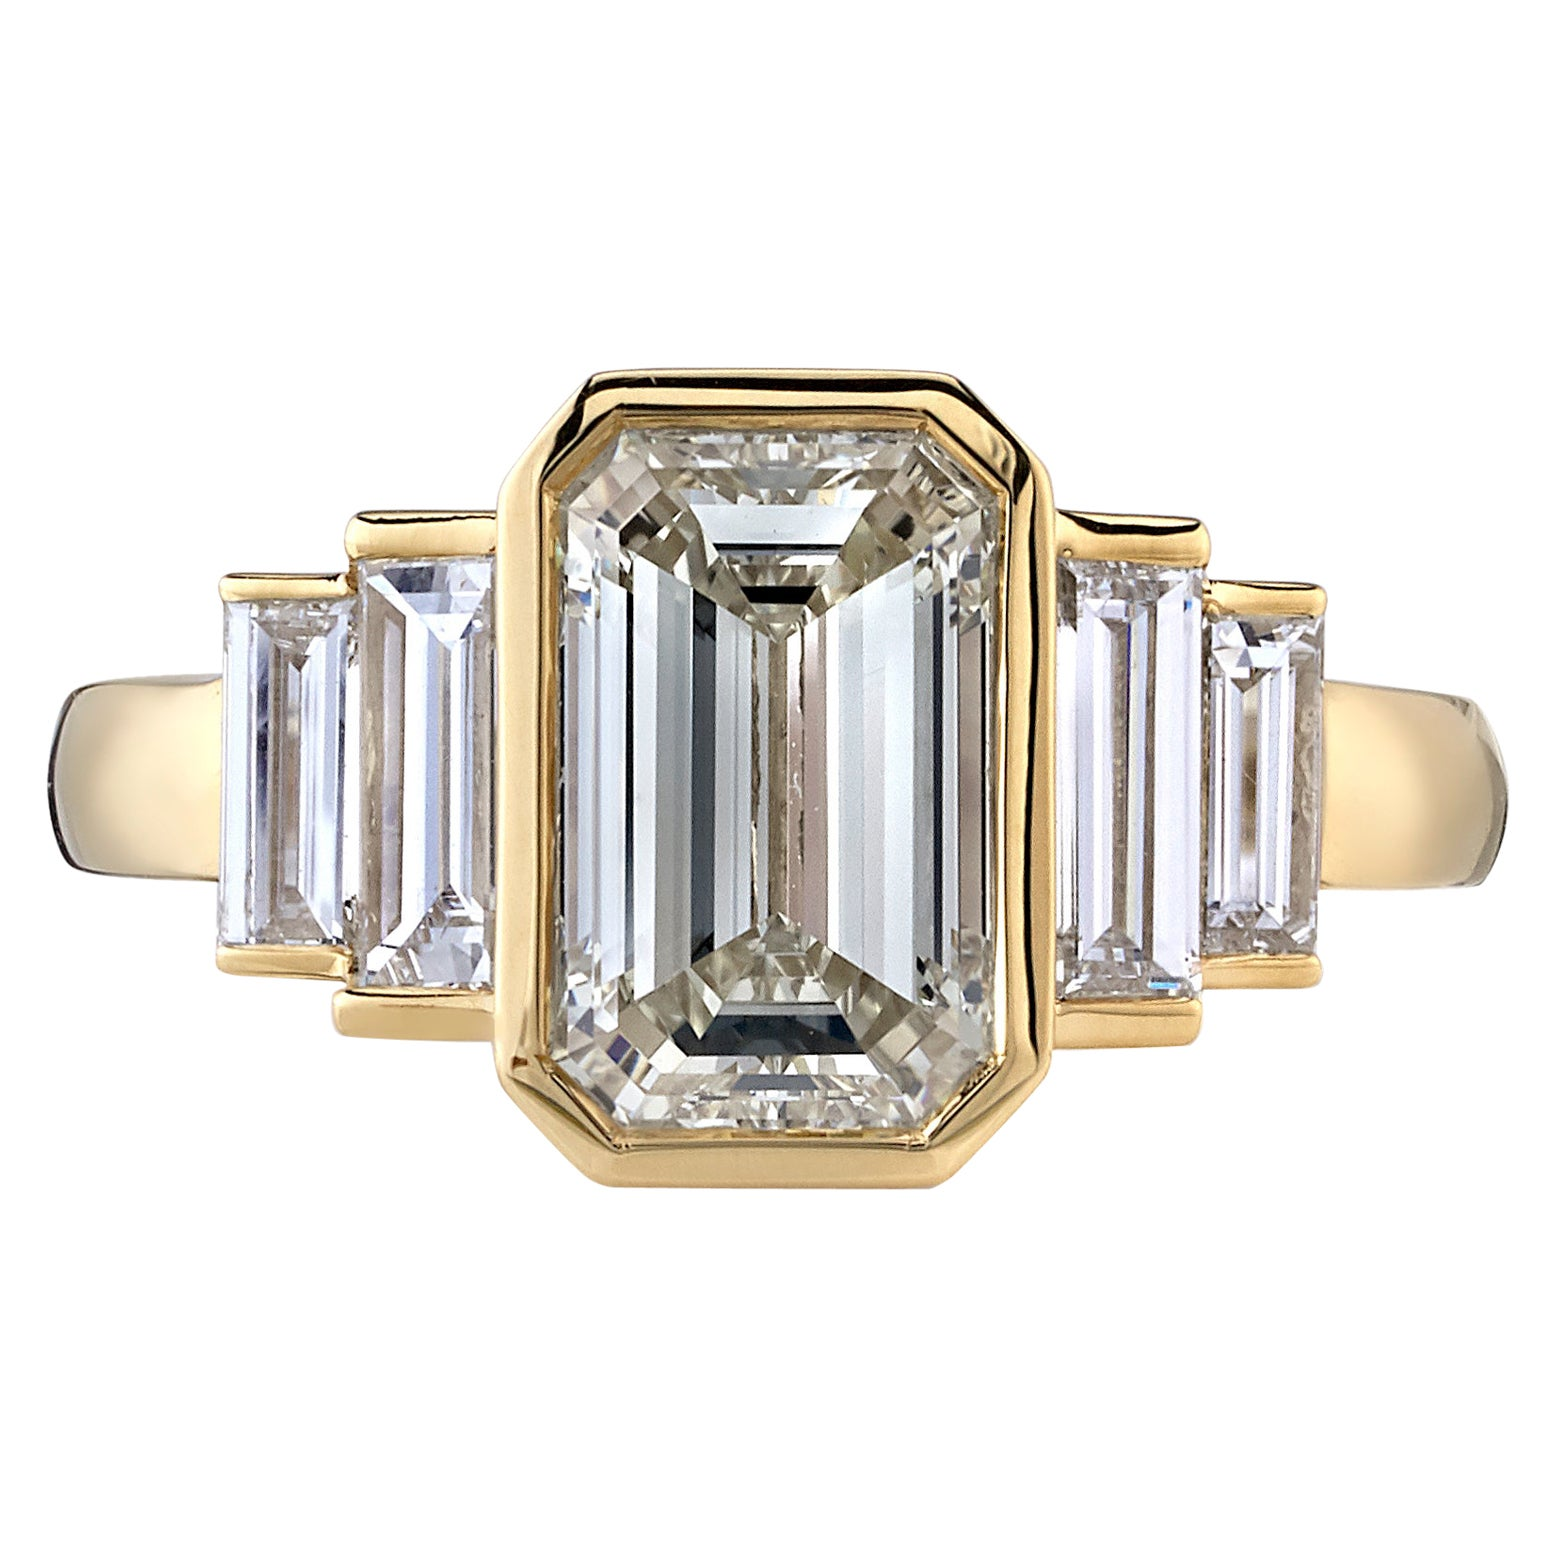 2.00 Carat Emerald Cut Diamond Set in a Handcrafted Yellow Gold Engagement Ring